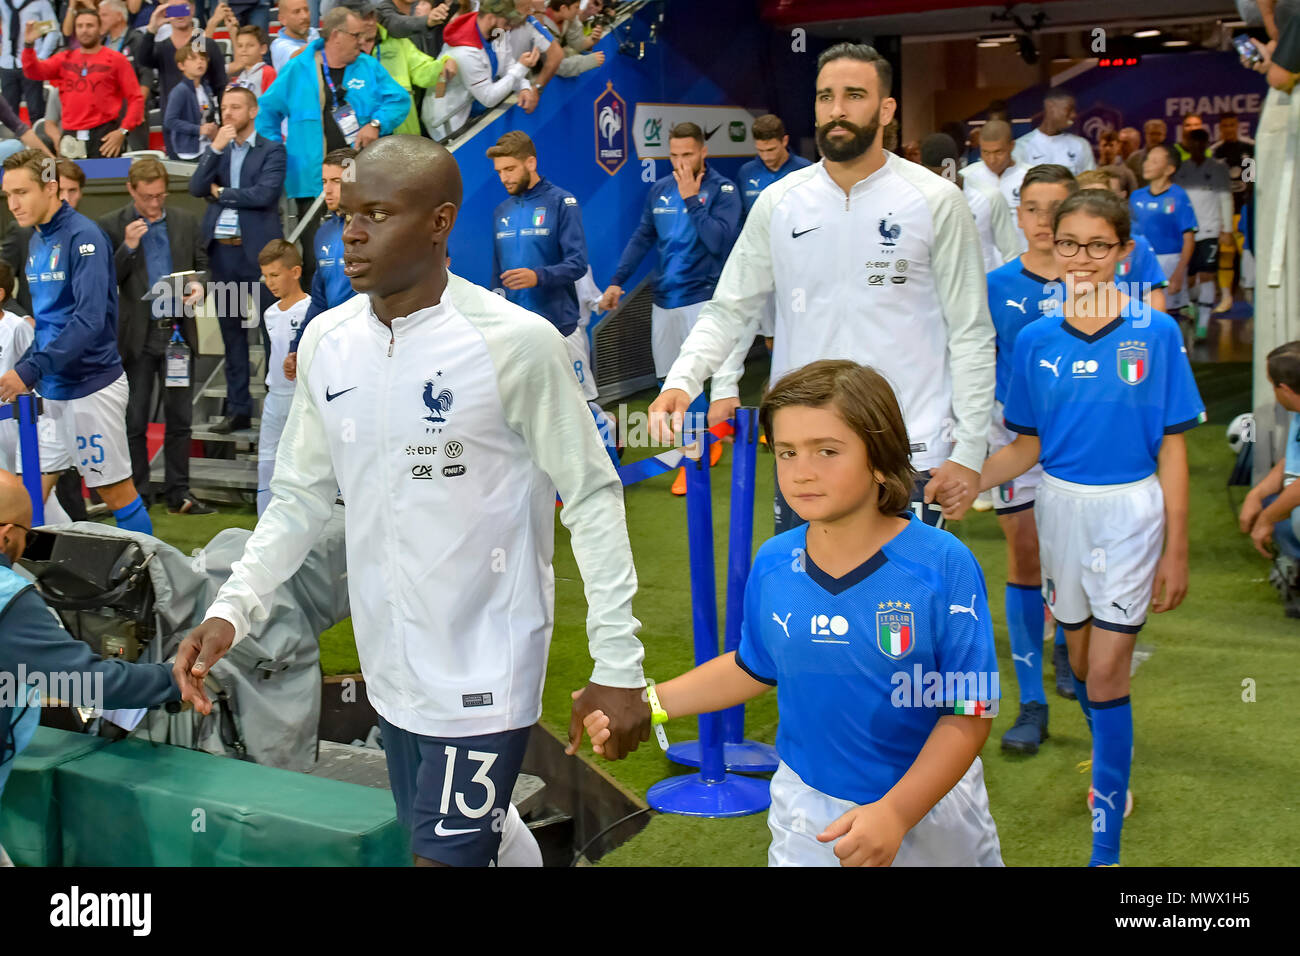 Nice, France. 1st June 2018. Soccer Football - International Friendly - France vs Italy - Allianz Riviera, Nice, France - June 1, 2018 France's N'Golo Kante and a mascot before the match Credit: BTWImages Sport/Alamy Live News - Stock Image